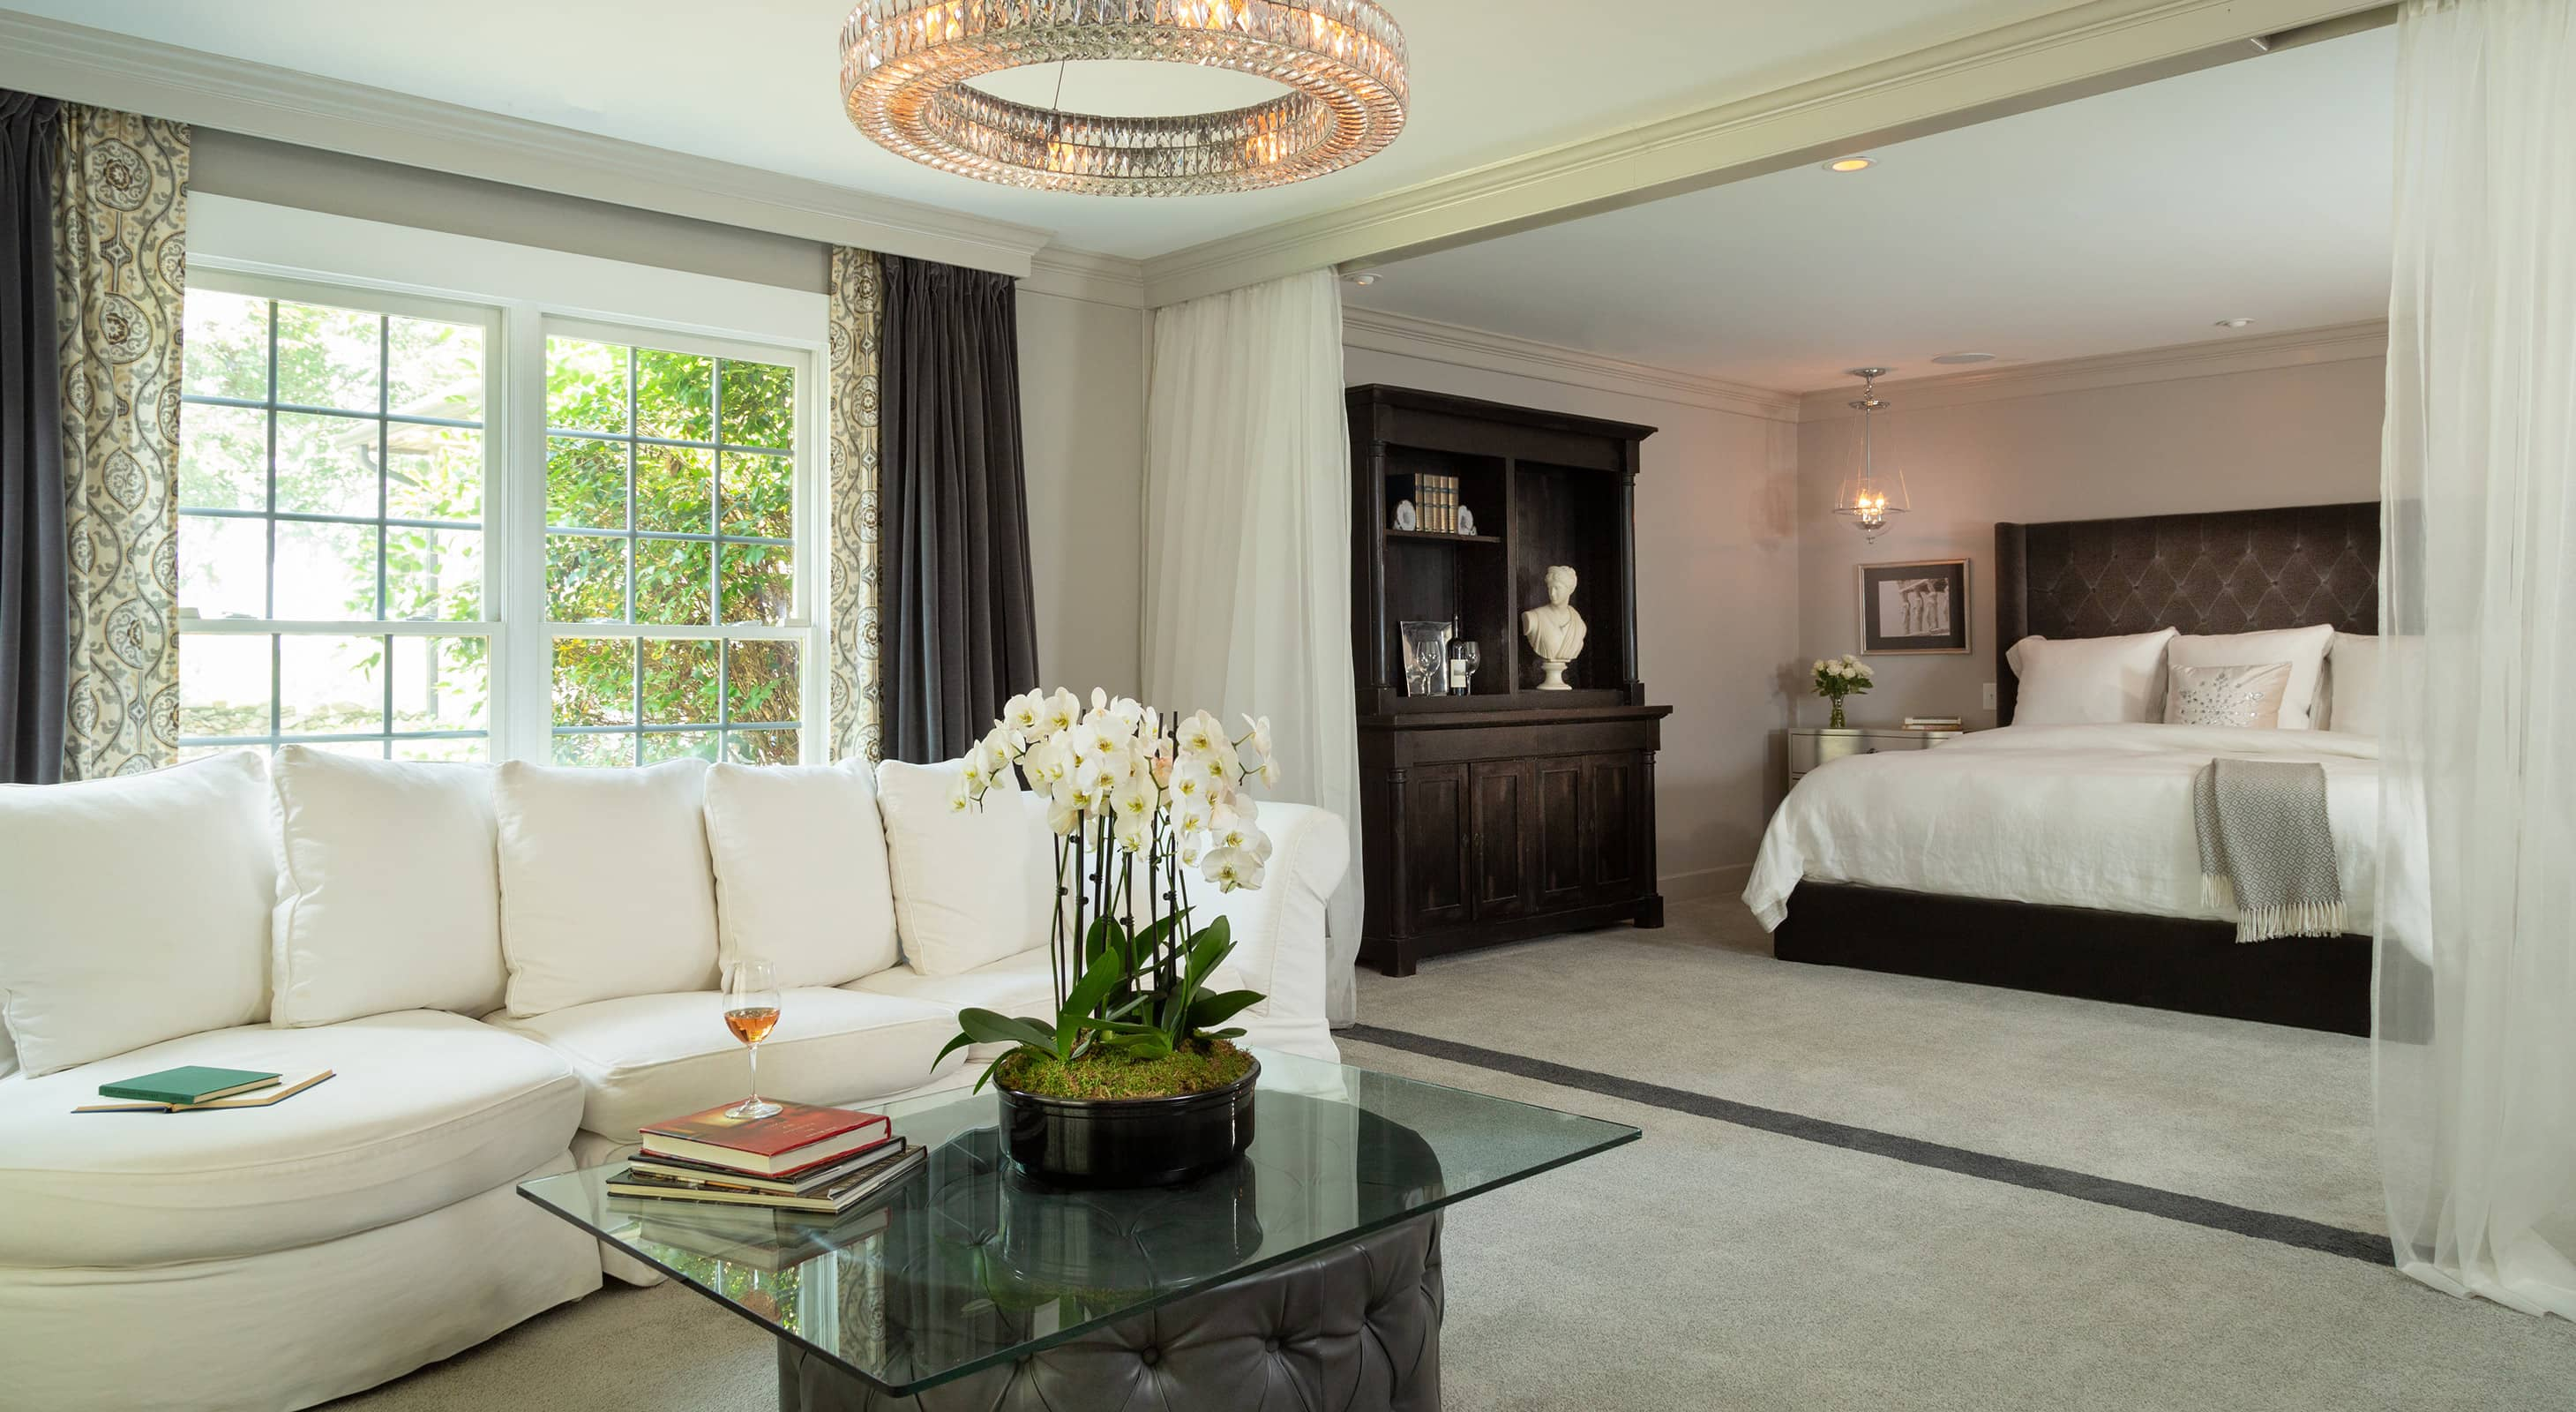 Glen Gordon - Gordon Suite bed and living room